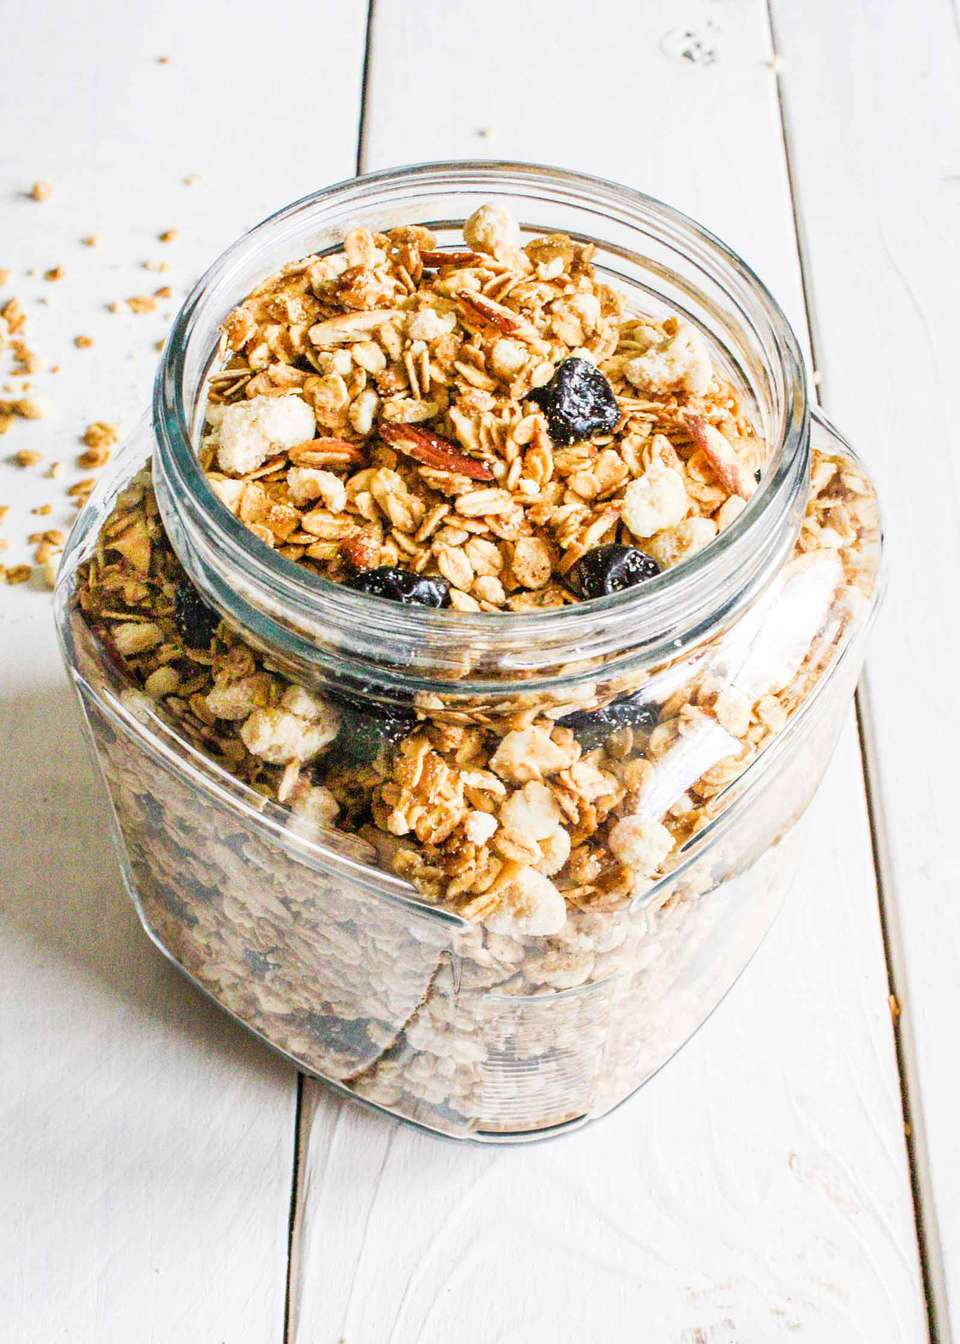 How to Make Granola with Cherries and Almonds